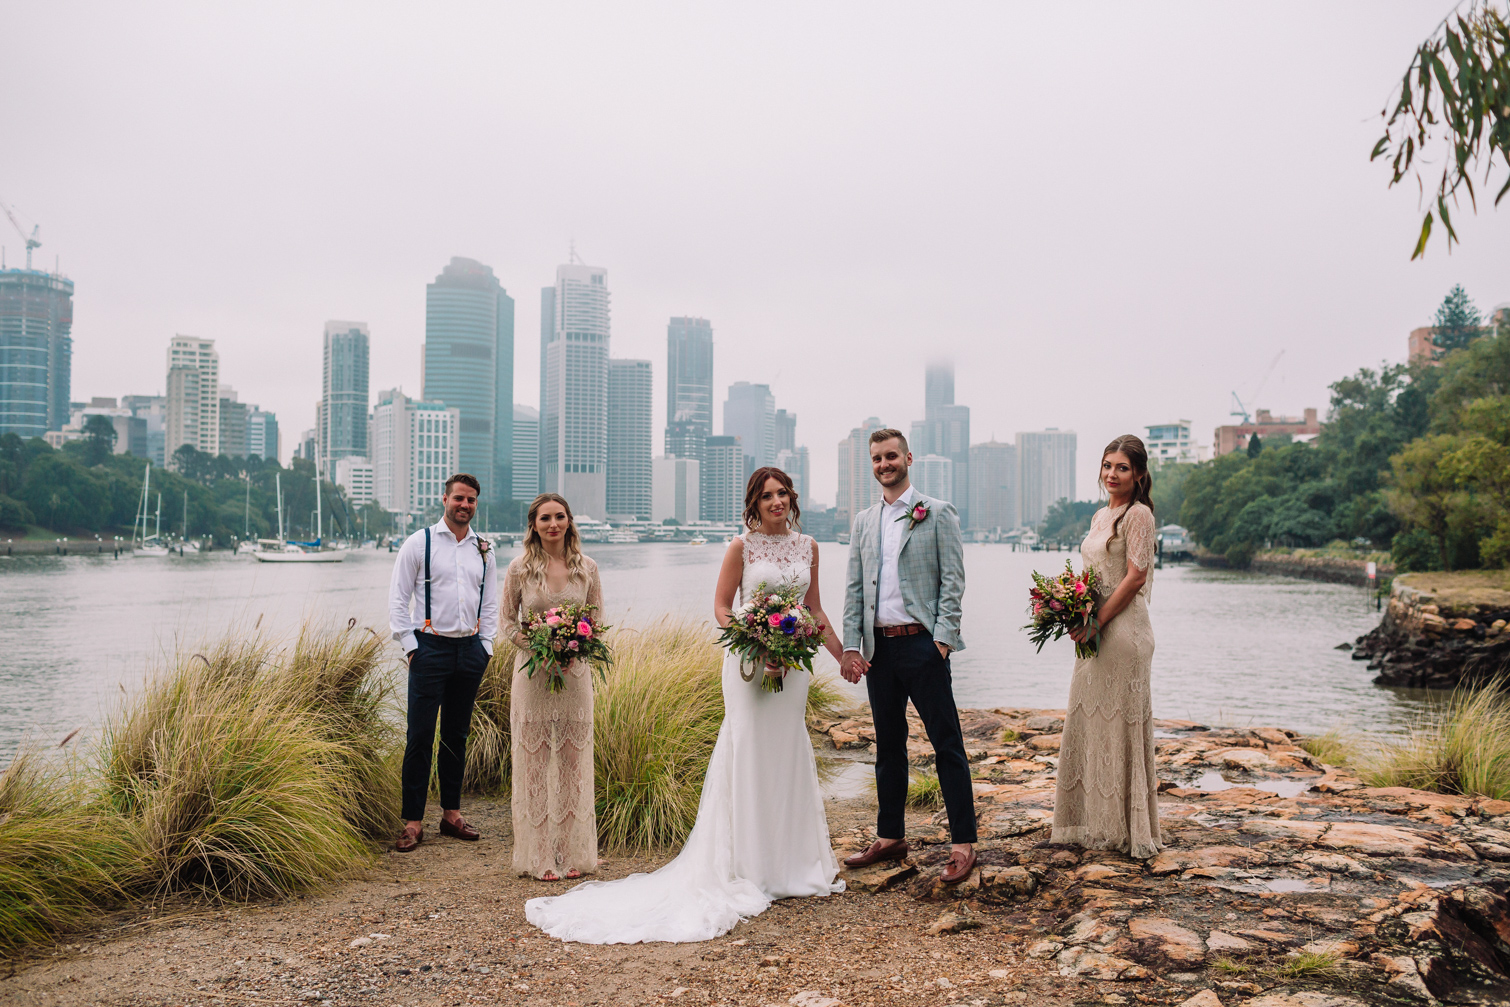 Riverlife_Wedding_Brisbane_Wedding_Photographer-62.jpg